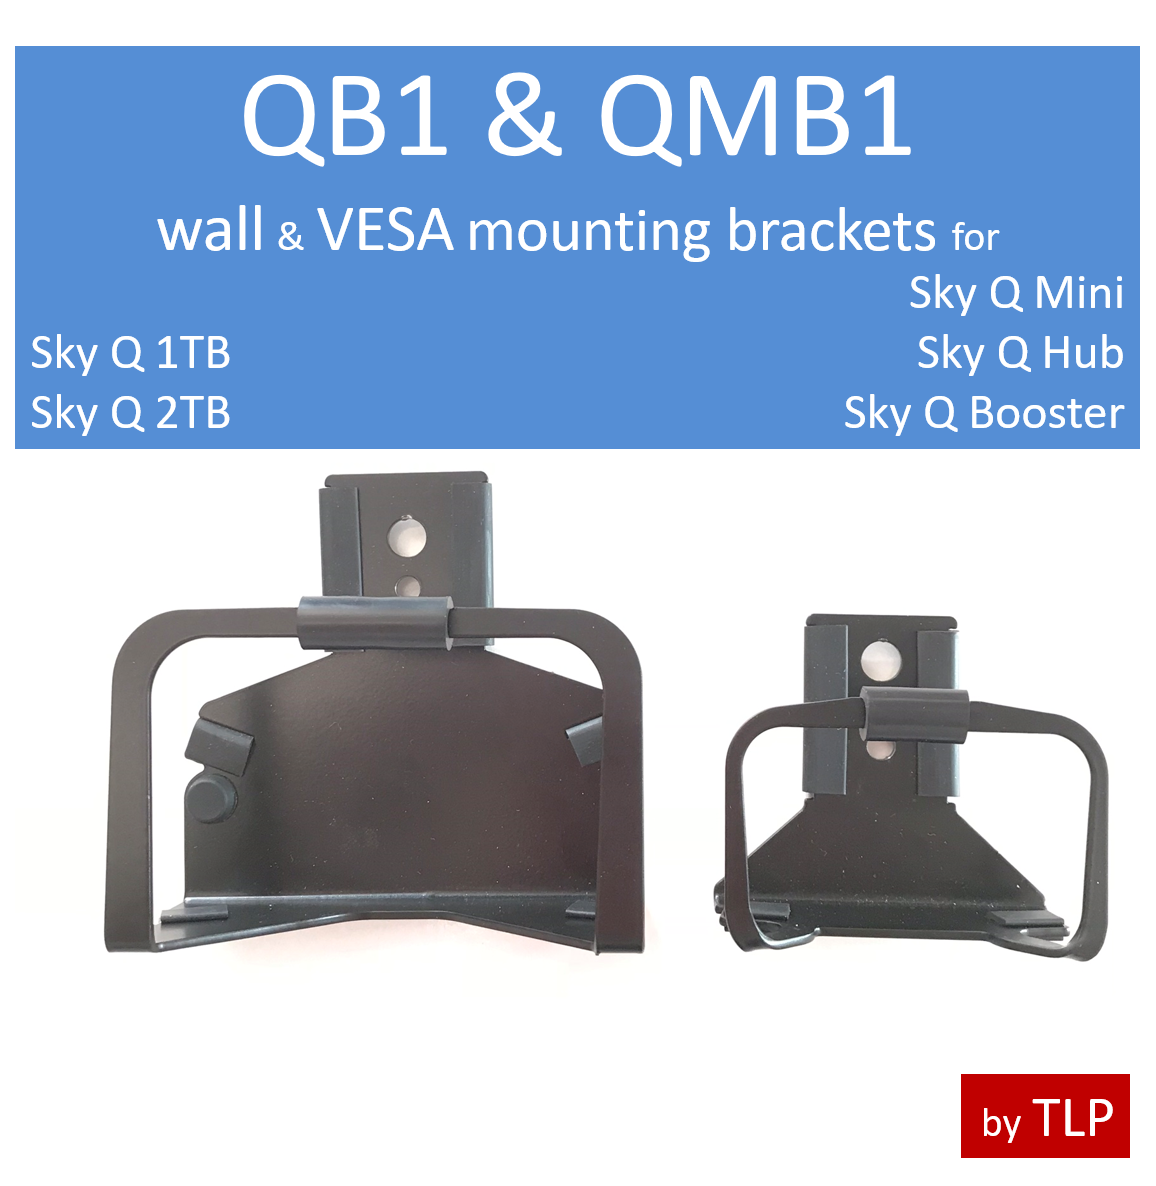 http://triplelinkproducts.co.uk/wp-content/uploads/2018/07/QB1-QMB1-combi.png